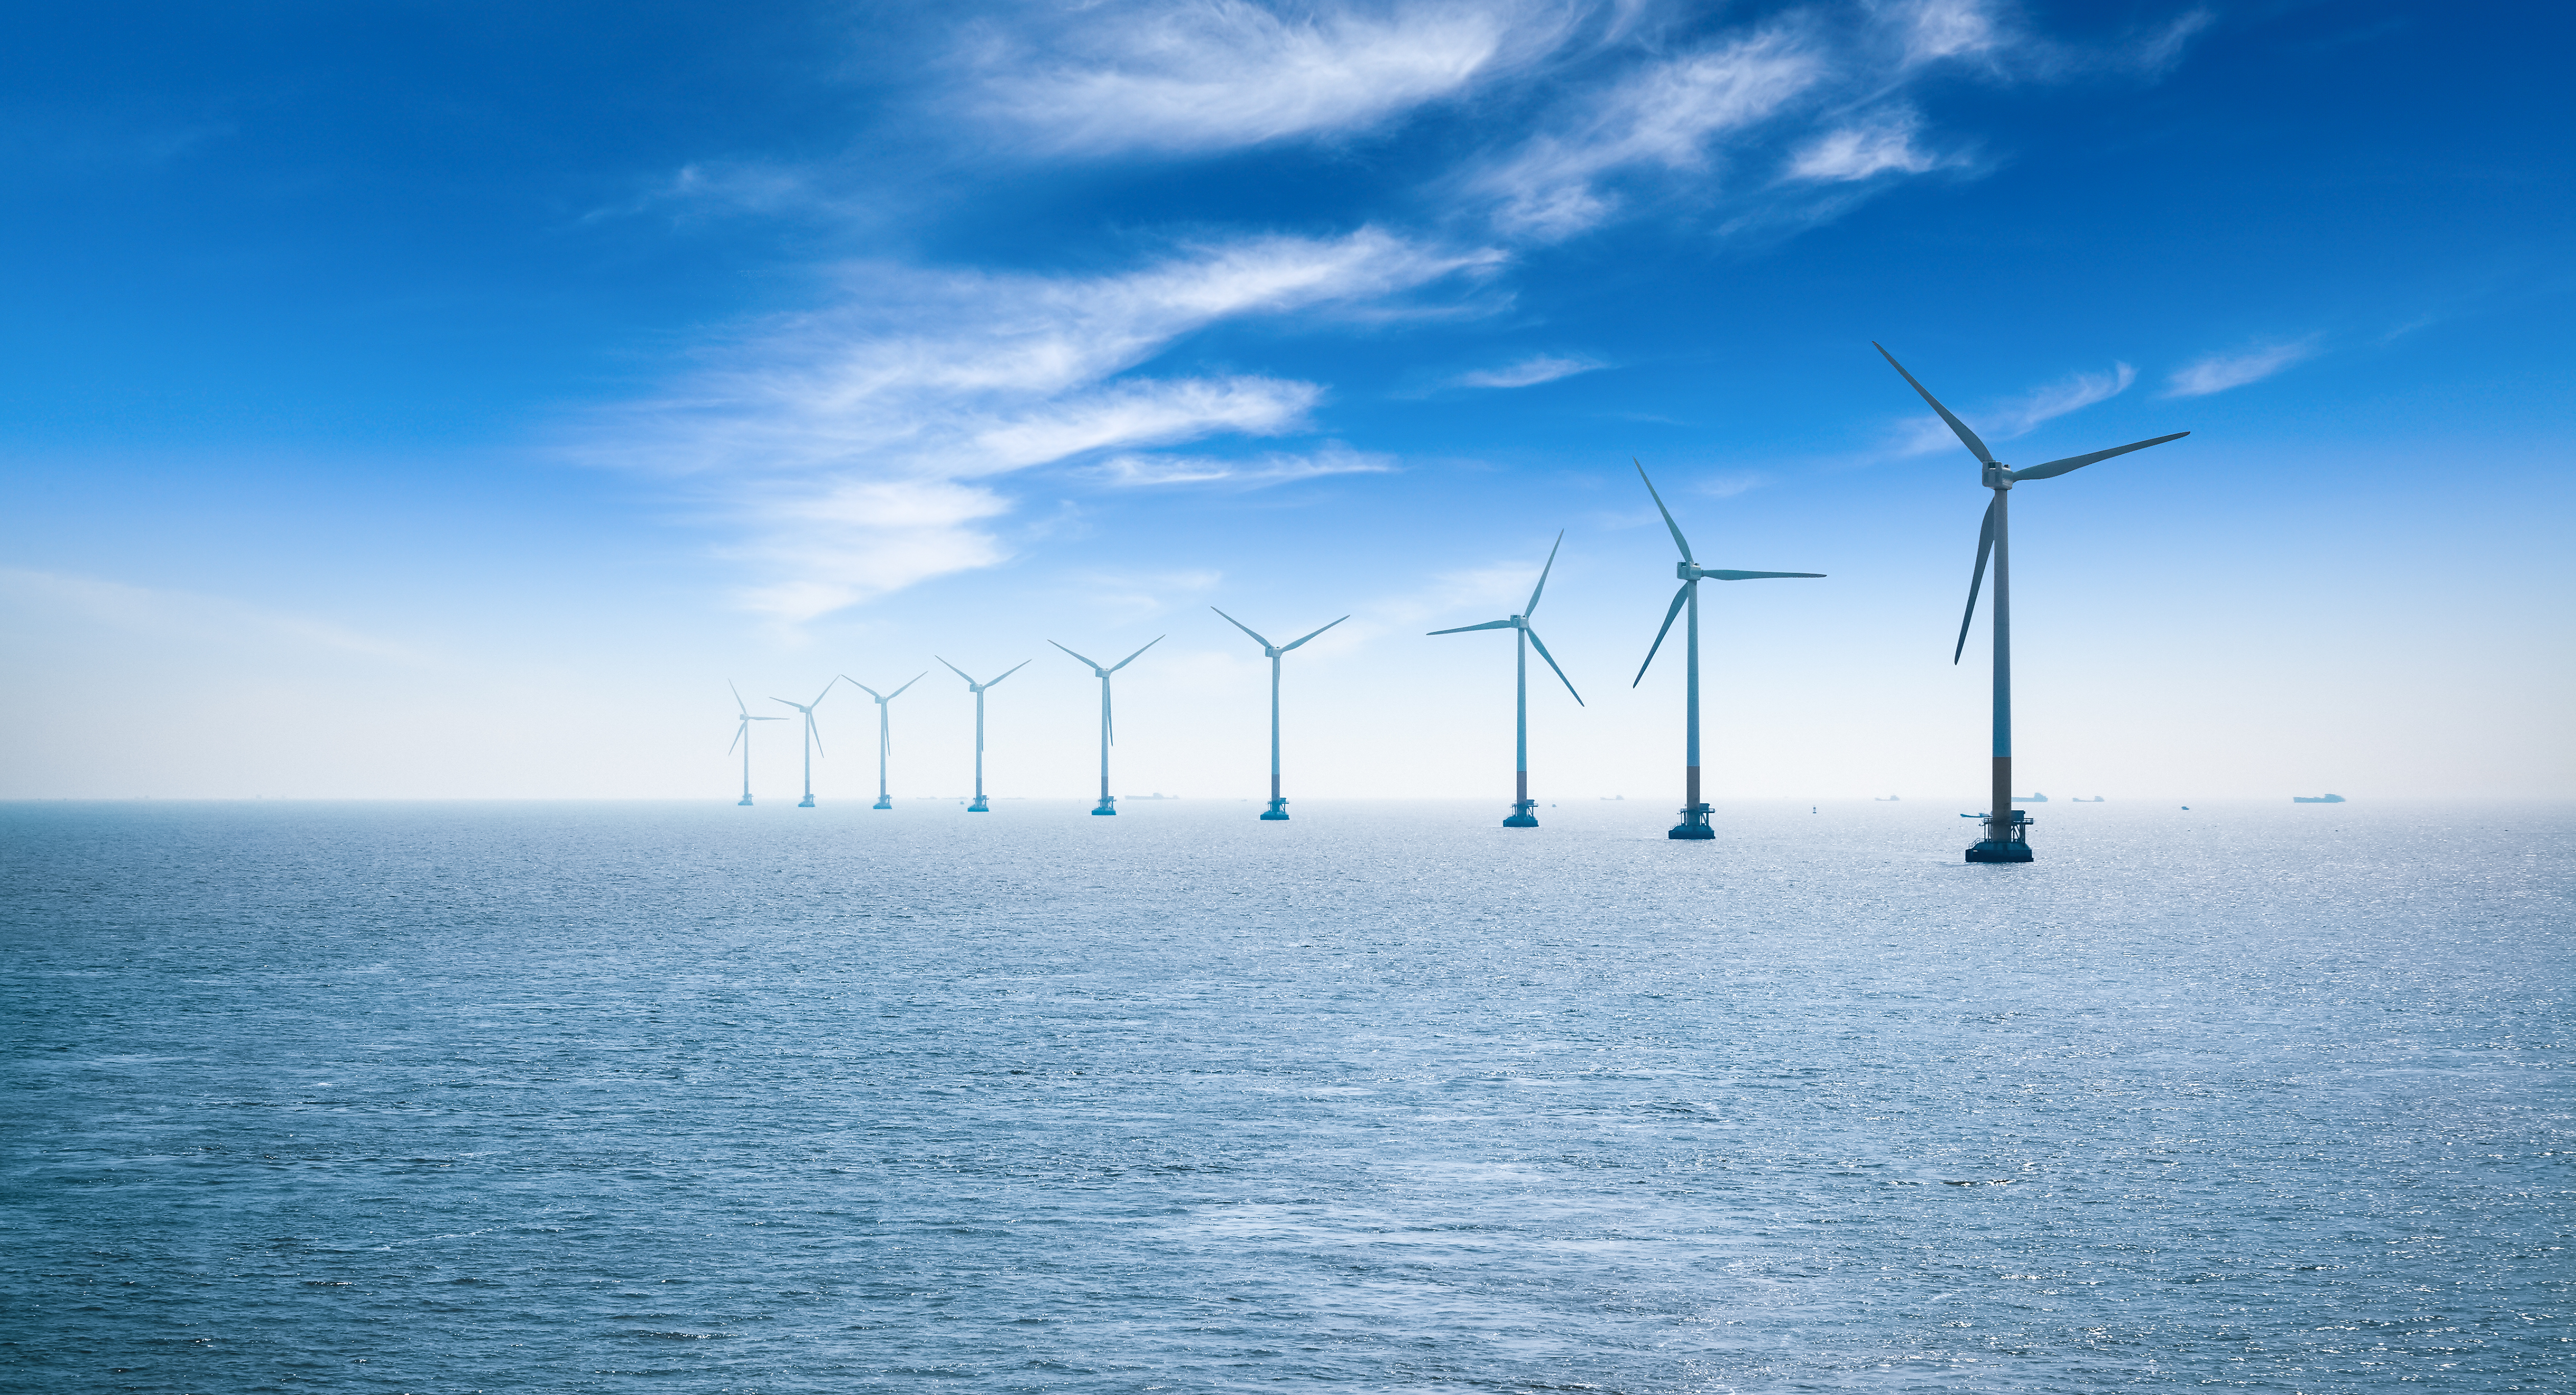 Wind Cleaner Energy Projected to Be $70 Billion Supply Chain Opportunity